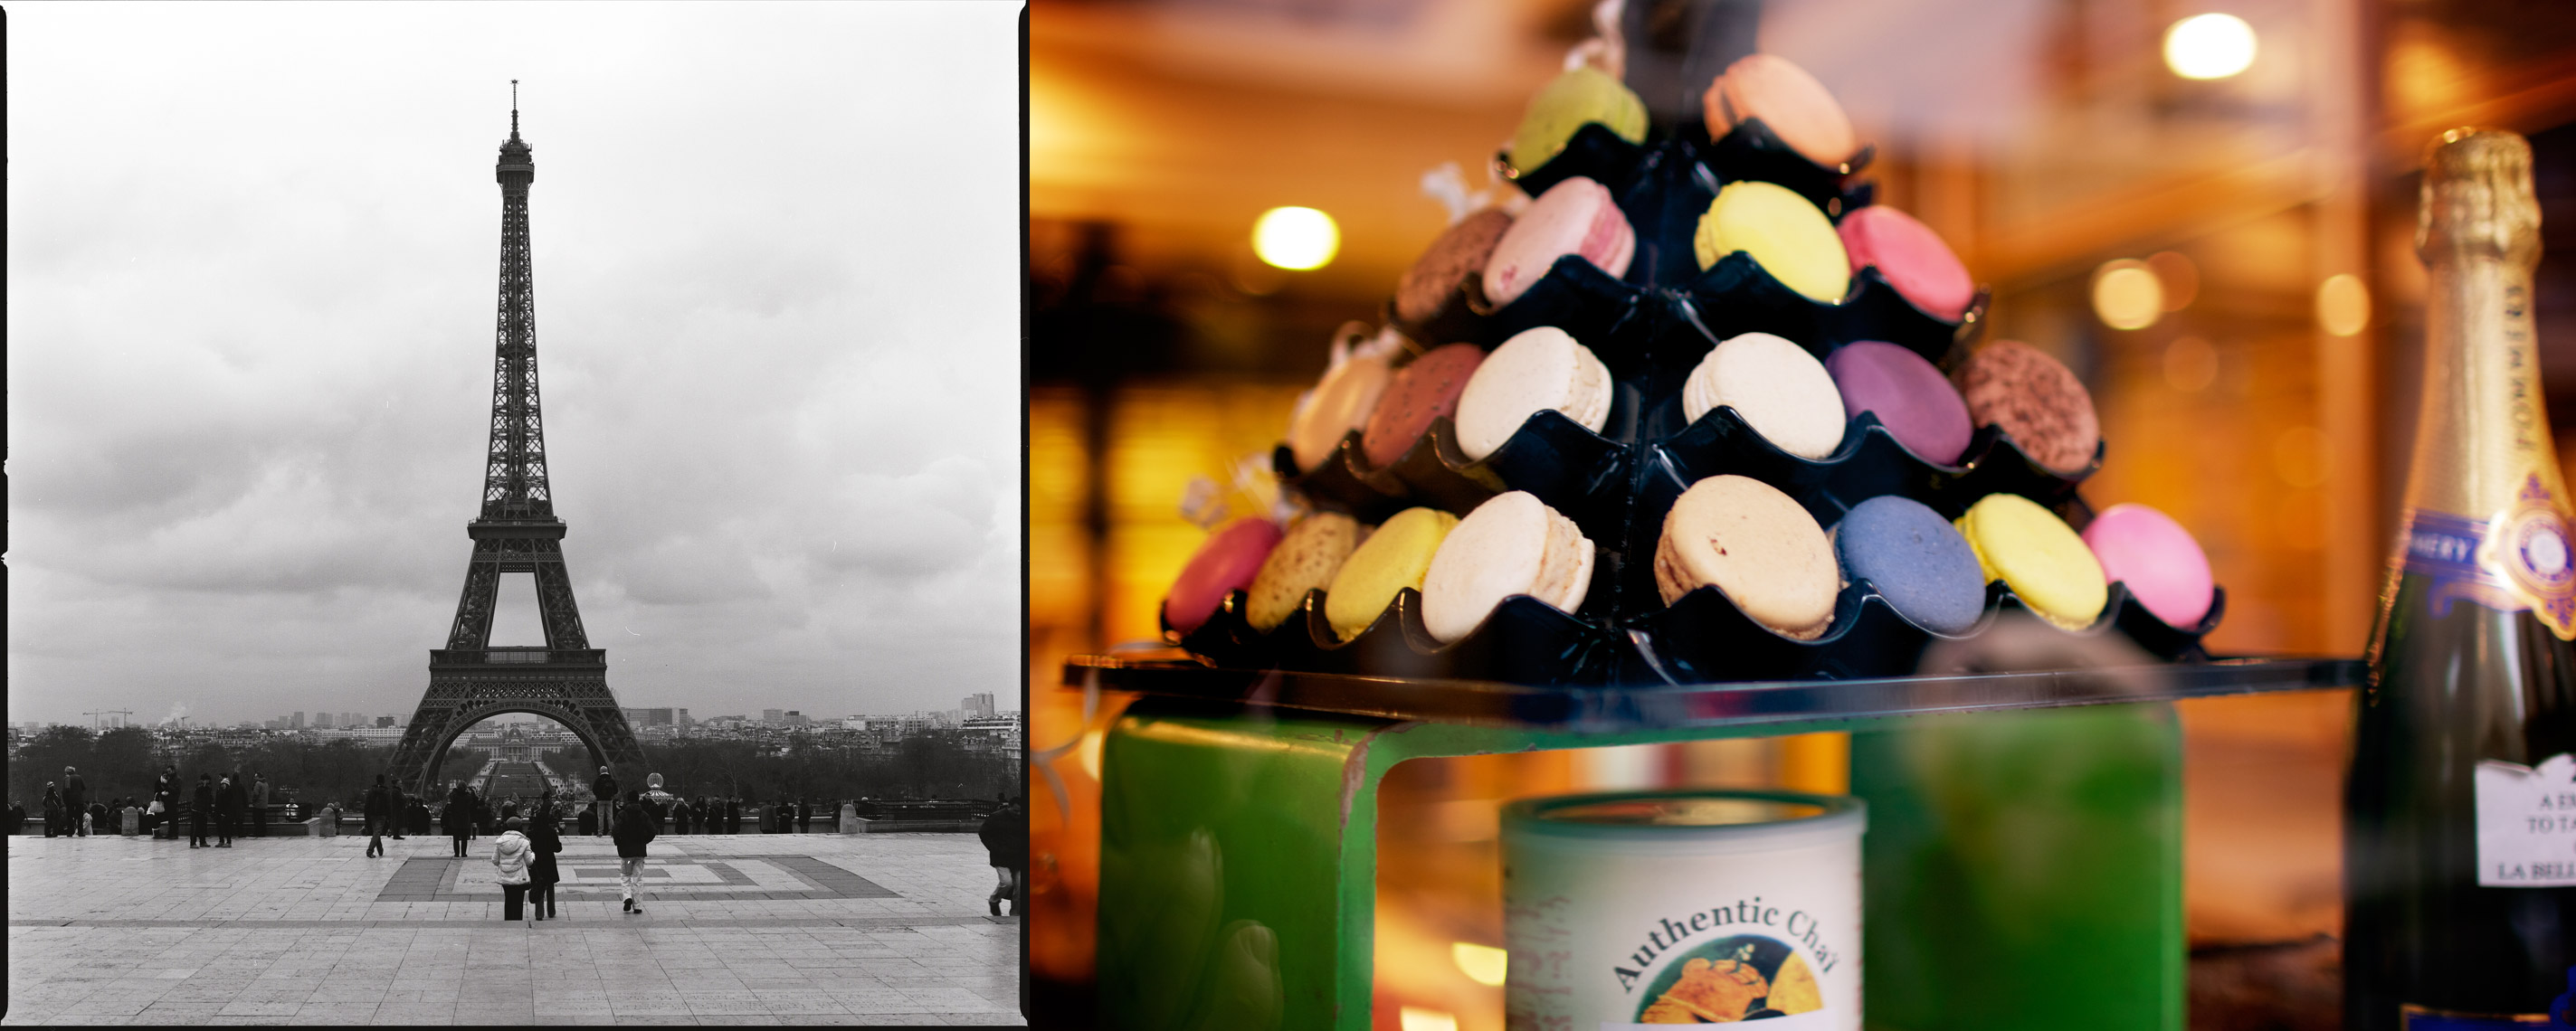 Eiffel Tower and Macaroons, Paris